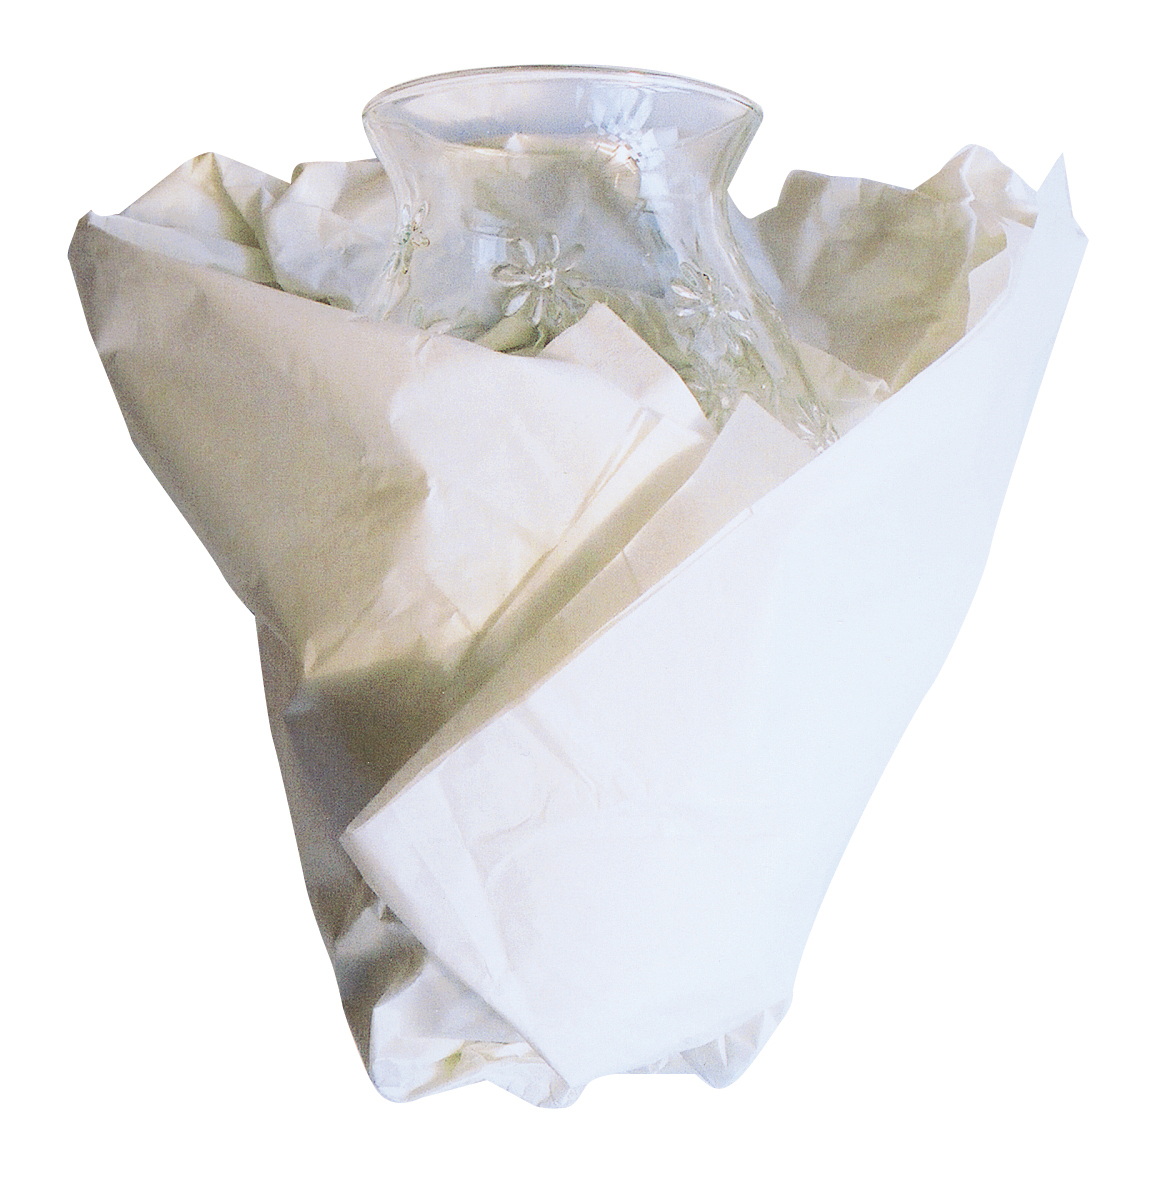 unbuffered acid free tissue paper